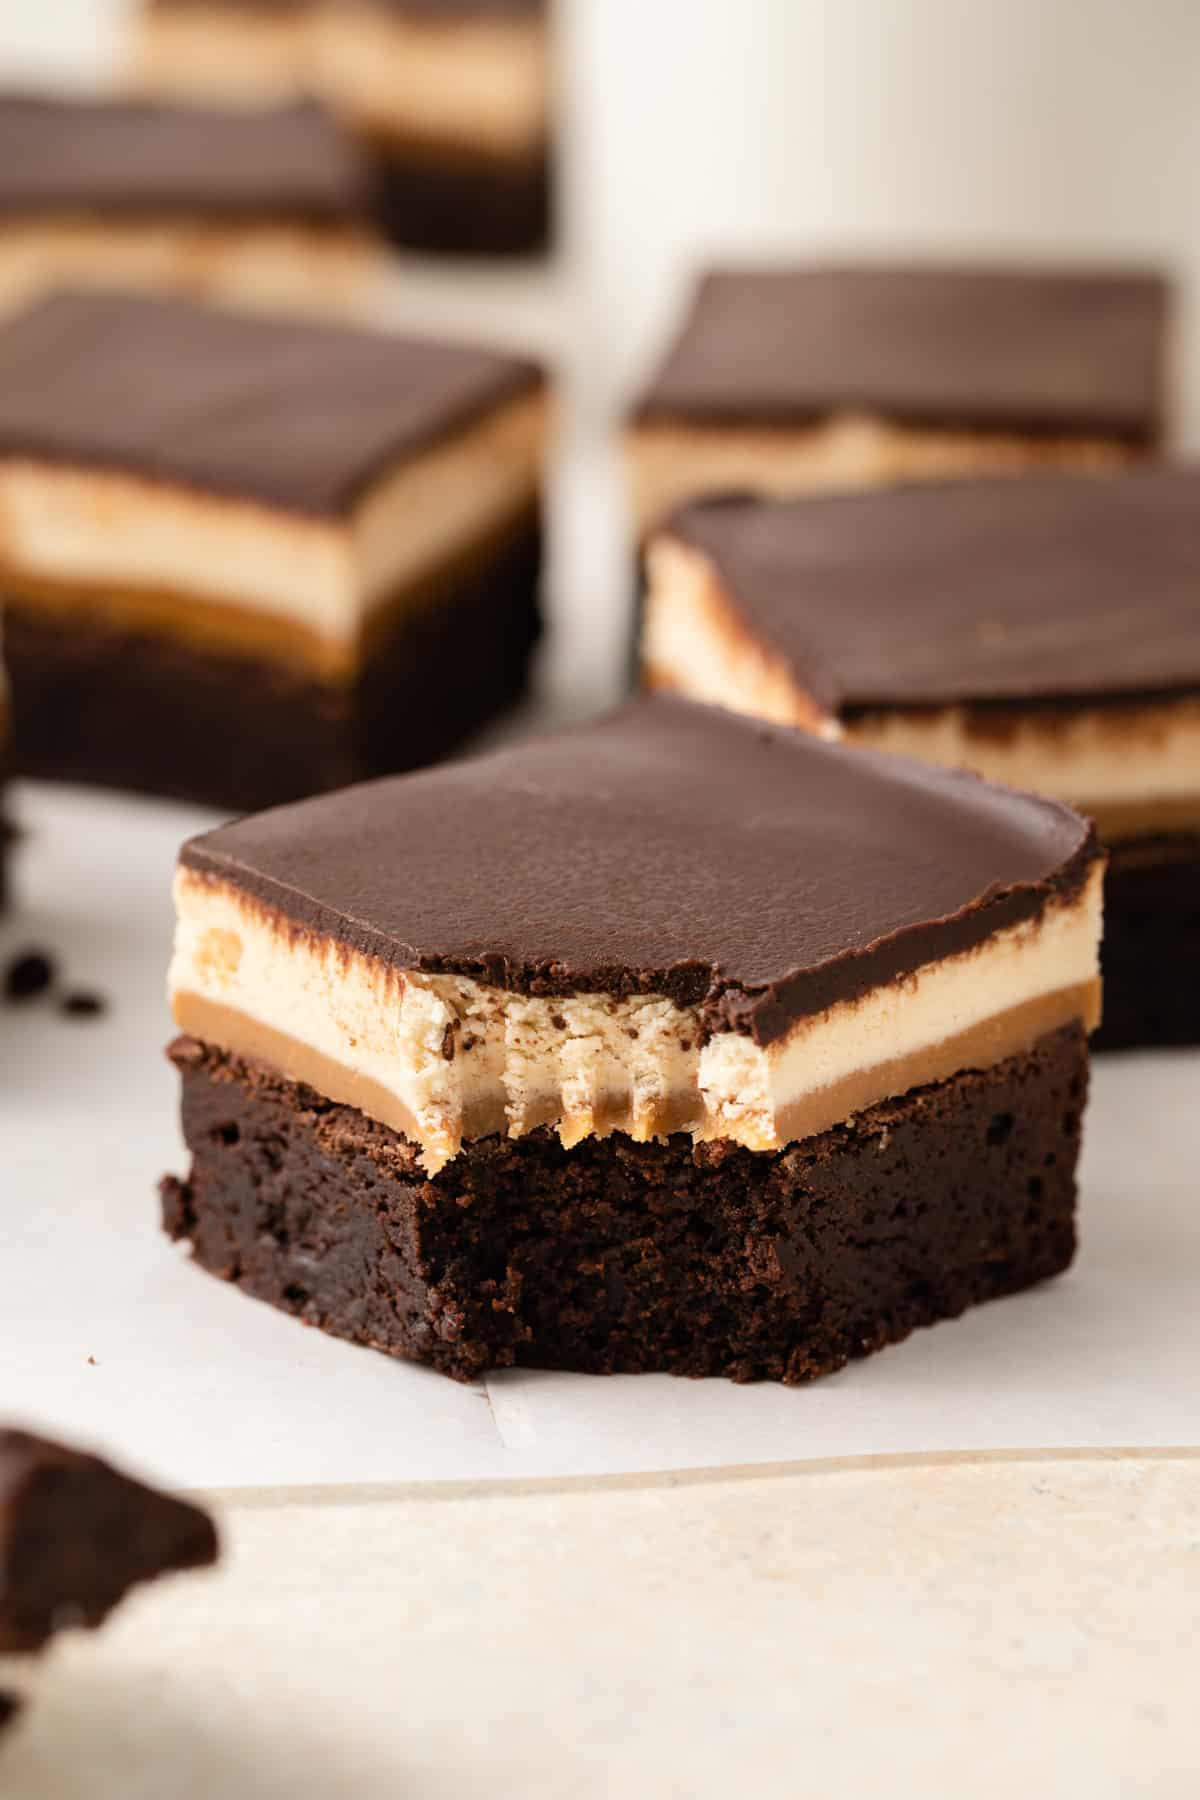 Above view a fudgy chocolate brownie with layers of gooey caramel, chewy nougat, and chocolate ganache over the top.